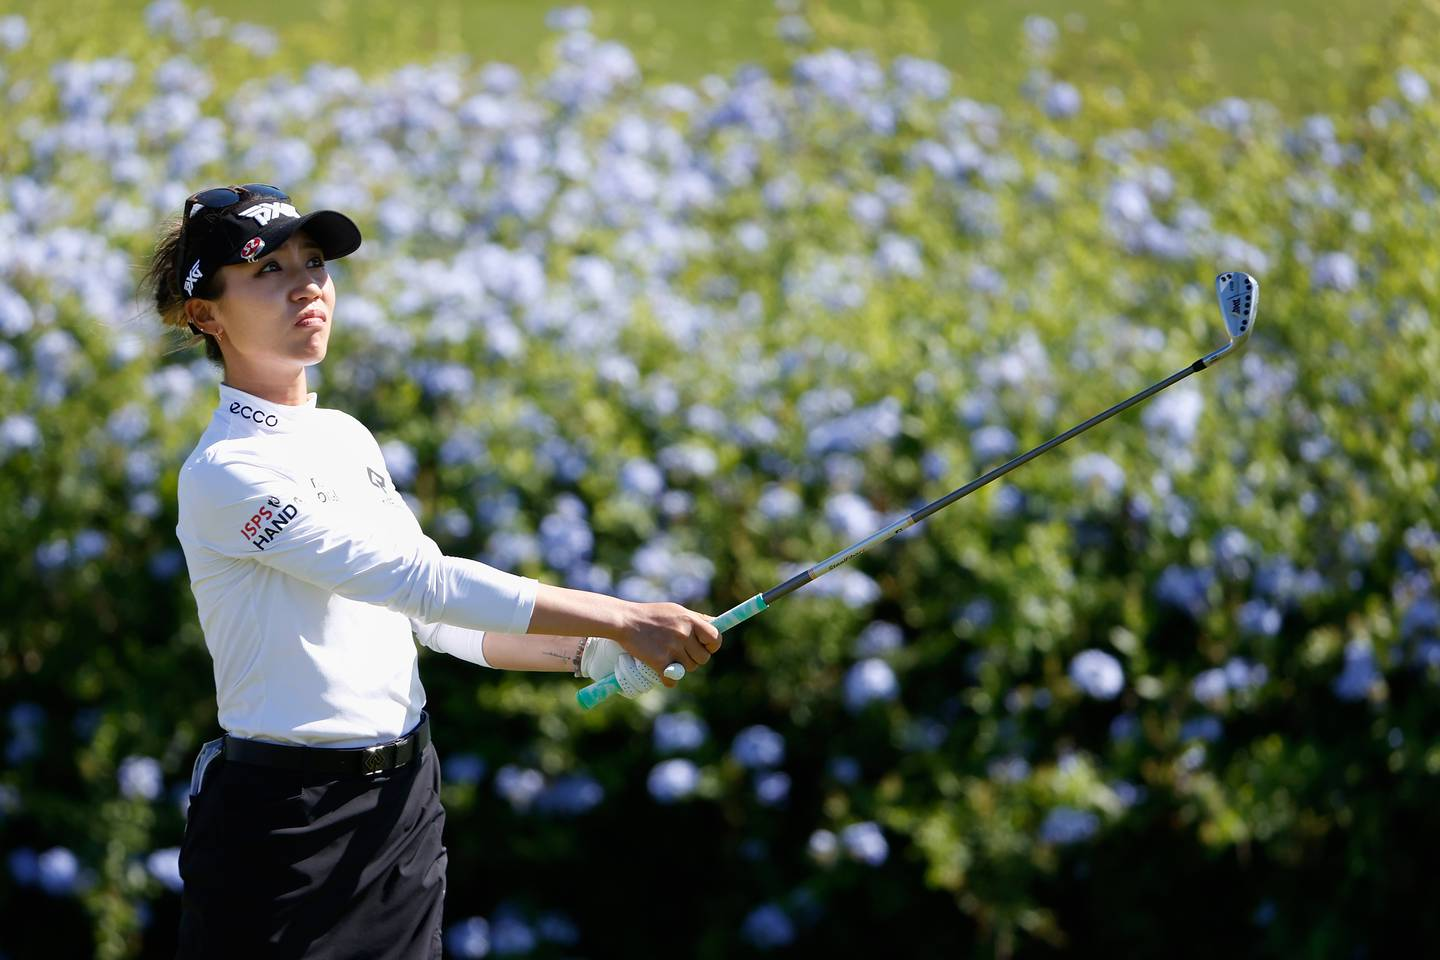 KAPOLEI, HAWAII - APRIL 15: Lydia Ko of New Zealand plays a tee shot on the 16th hole during the second round of the LPGA LOTTE Championship at Kapolei Golf Club on April 15, 2021 in Kapolei, Hawaii. (Photo by Christian Petersen/Getty Images)